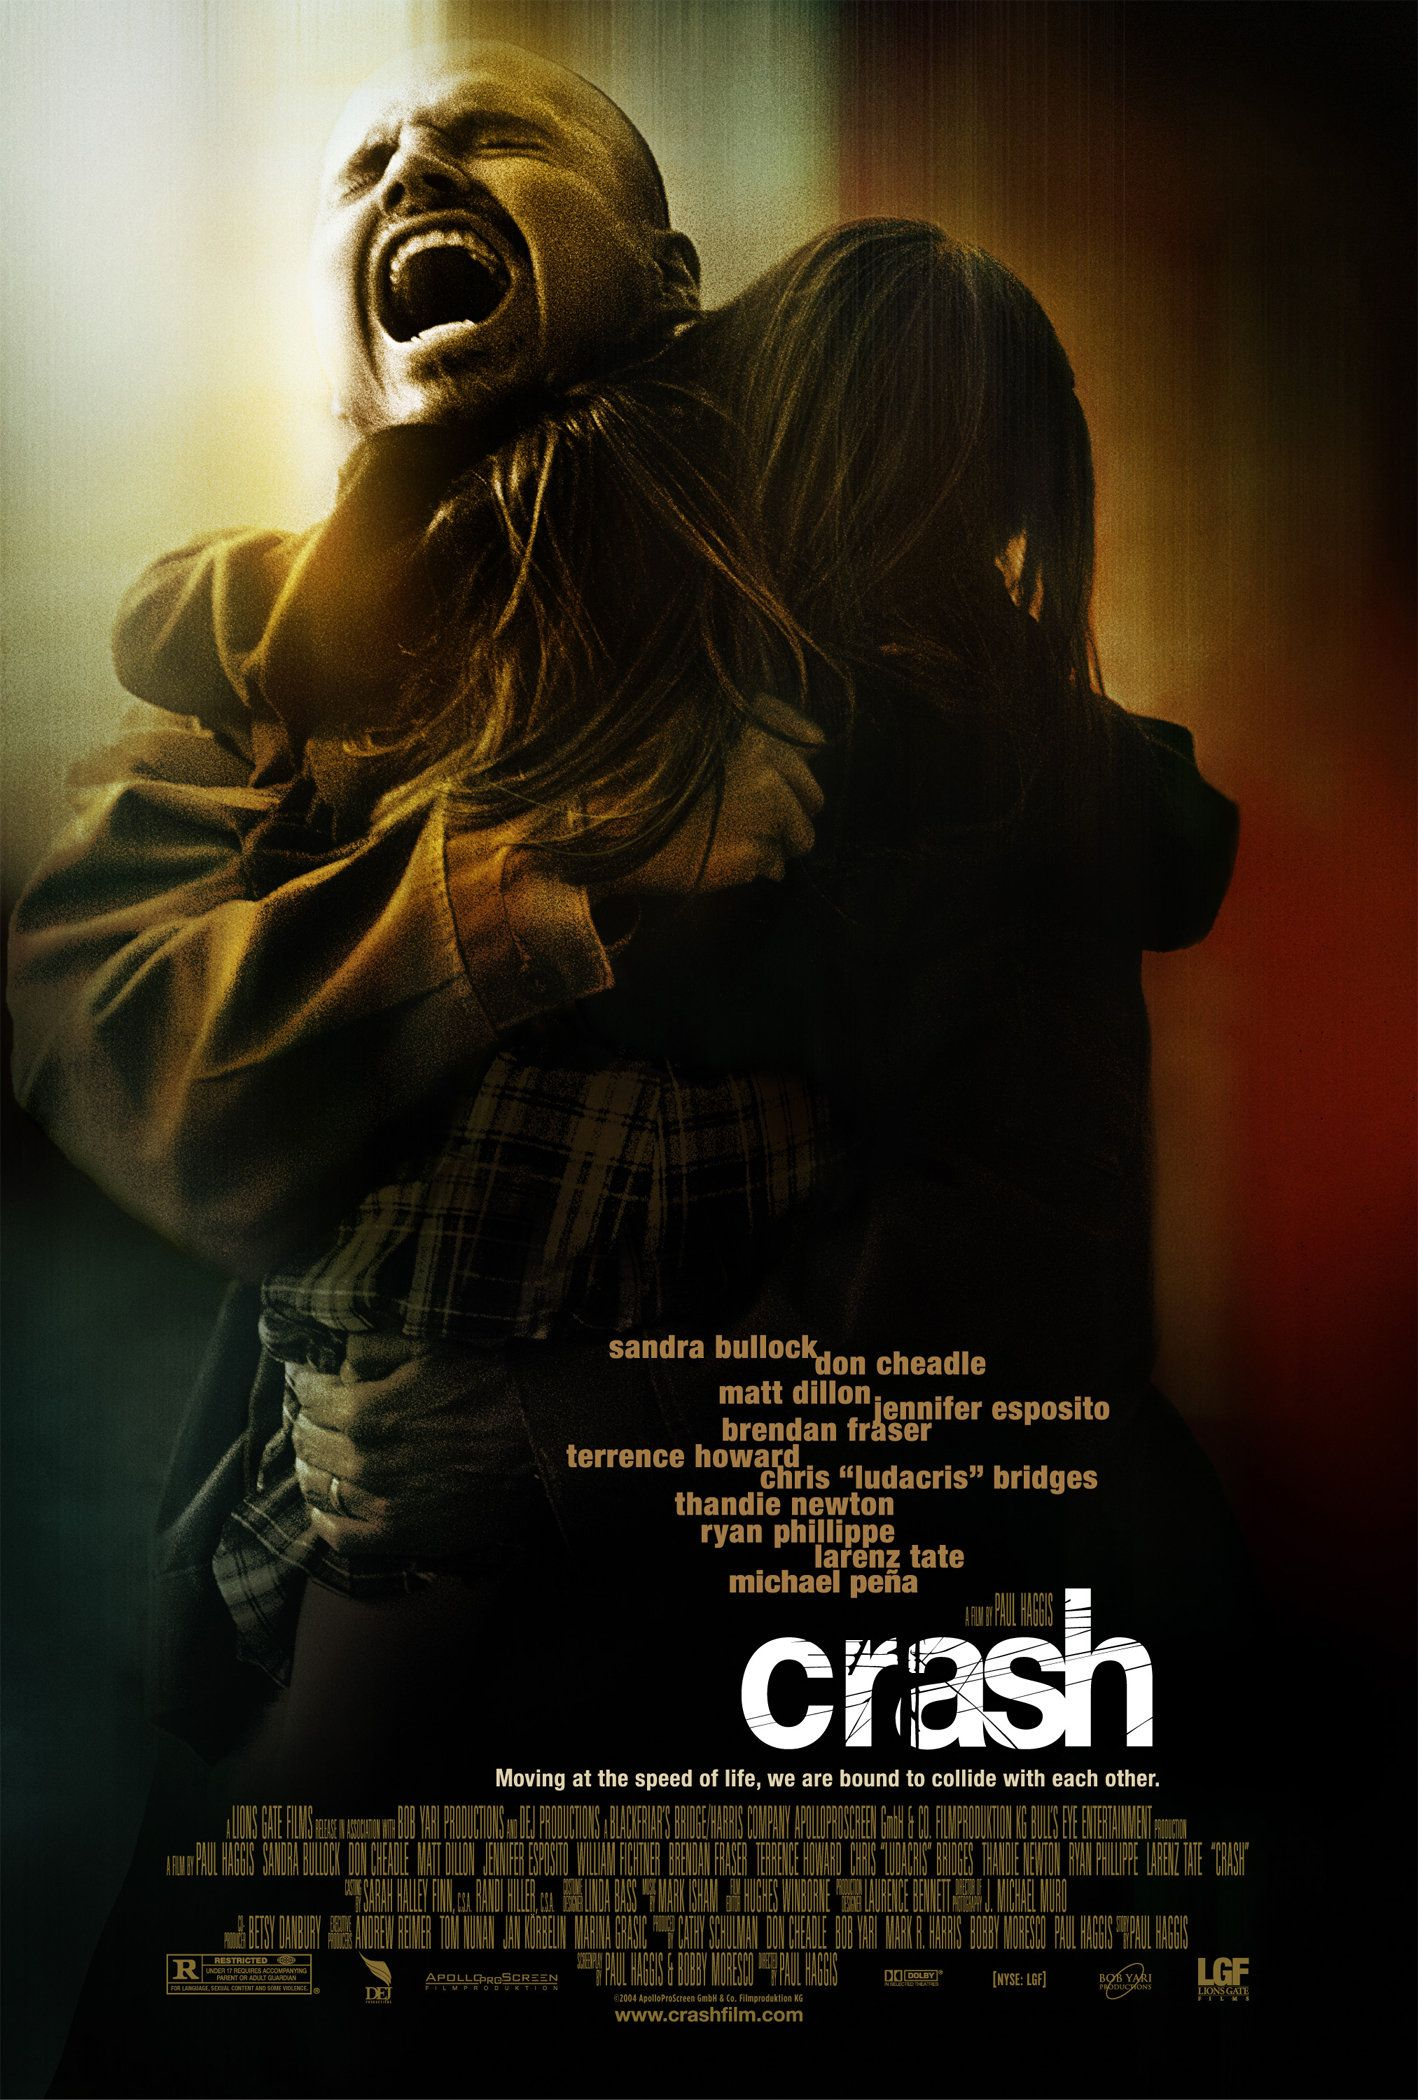 watch crash full movie hd p hindi dubbed streaming watch crash 2004 full movie hd 1280p hindi dubbed streaming online no buff